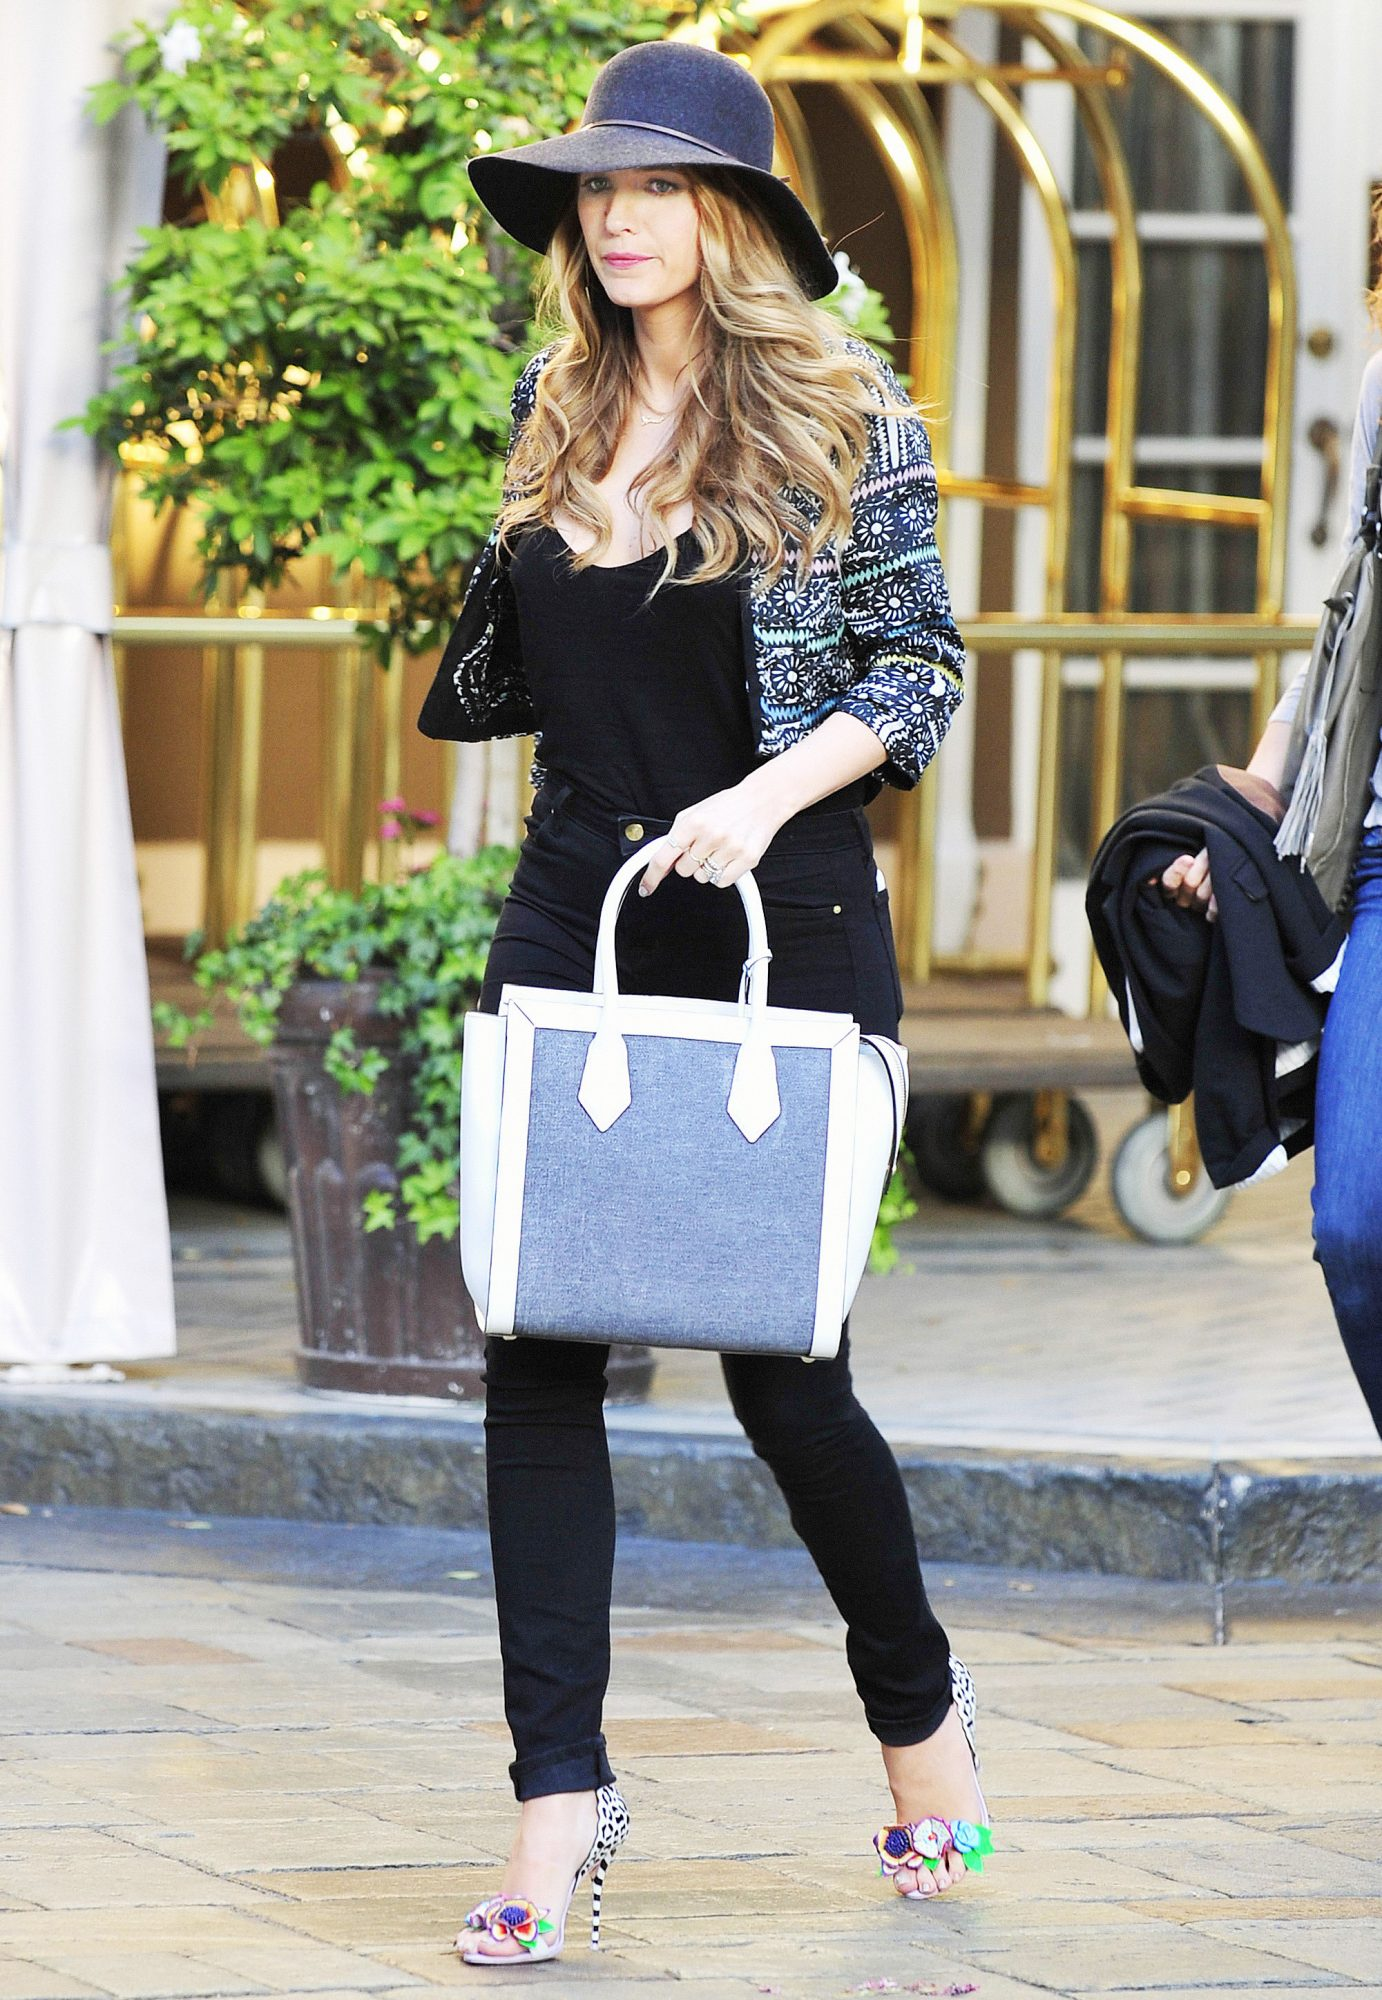 See How 3 <em>InStyle </em>Editors Accessorize with Blake Lively's Handbag